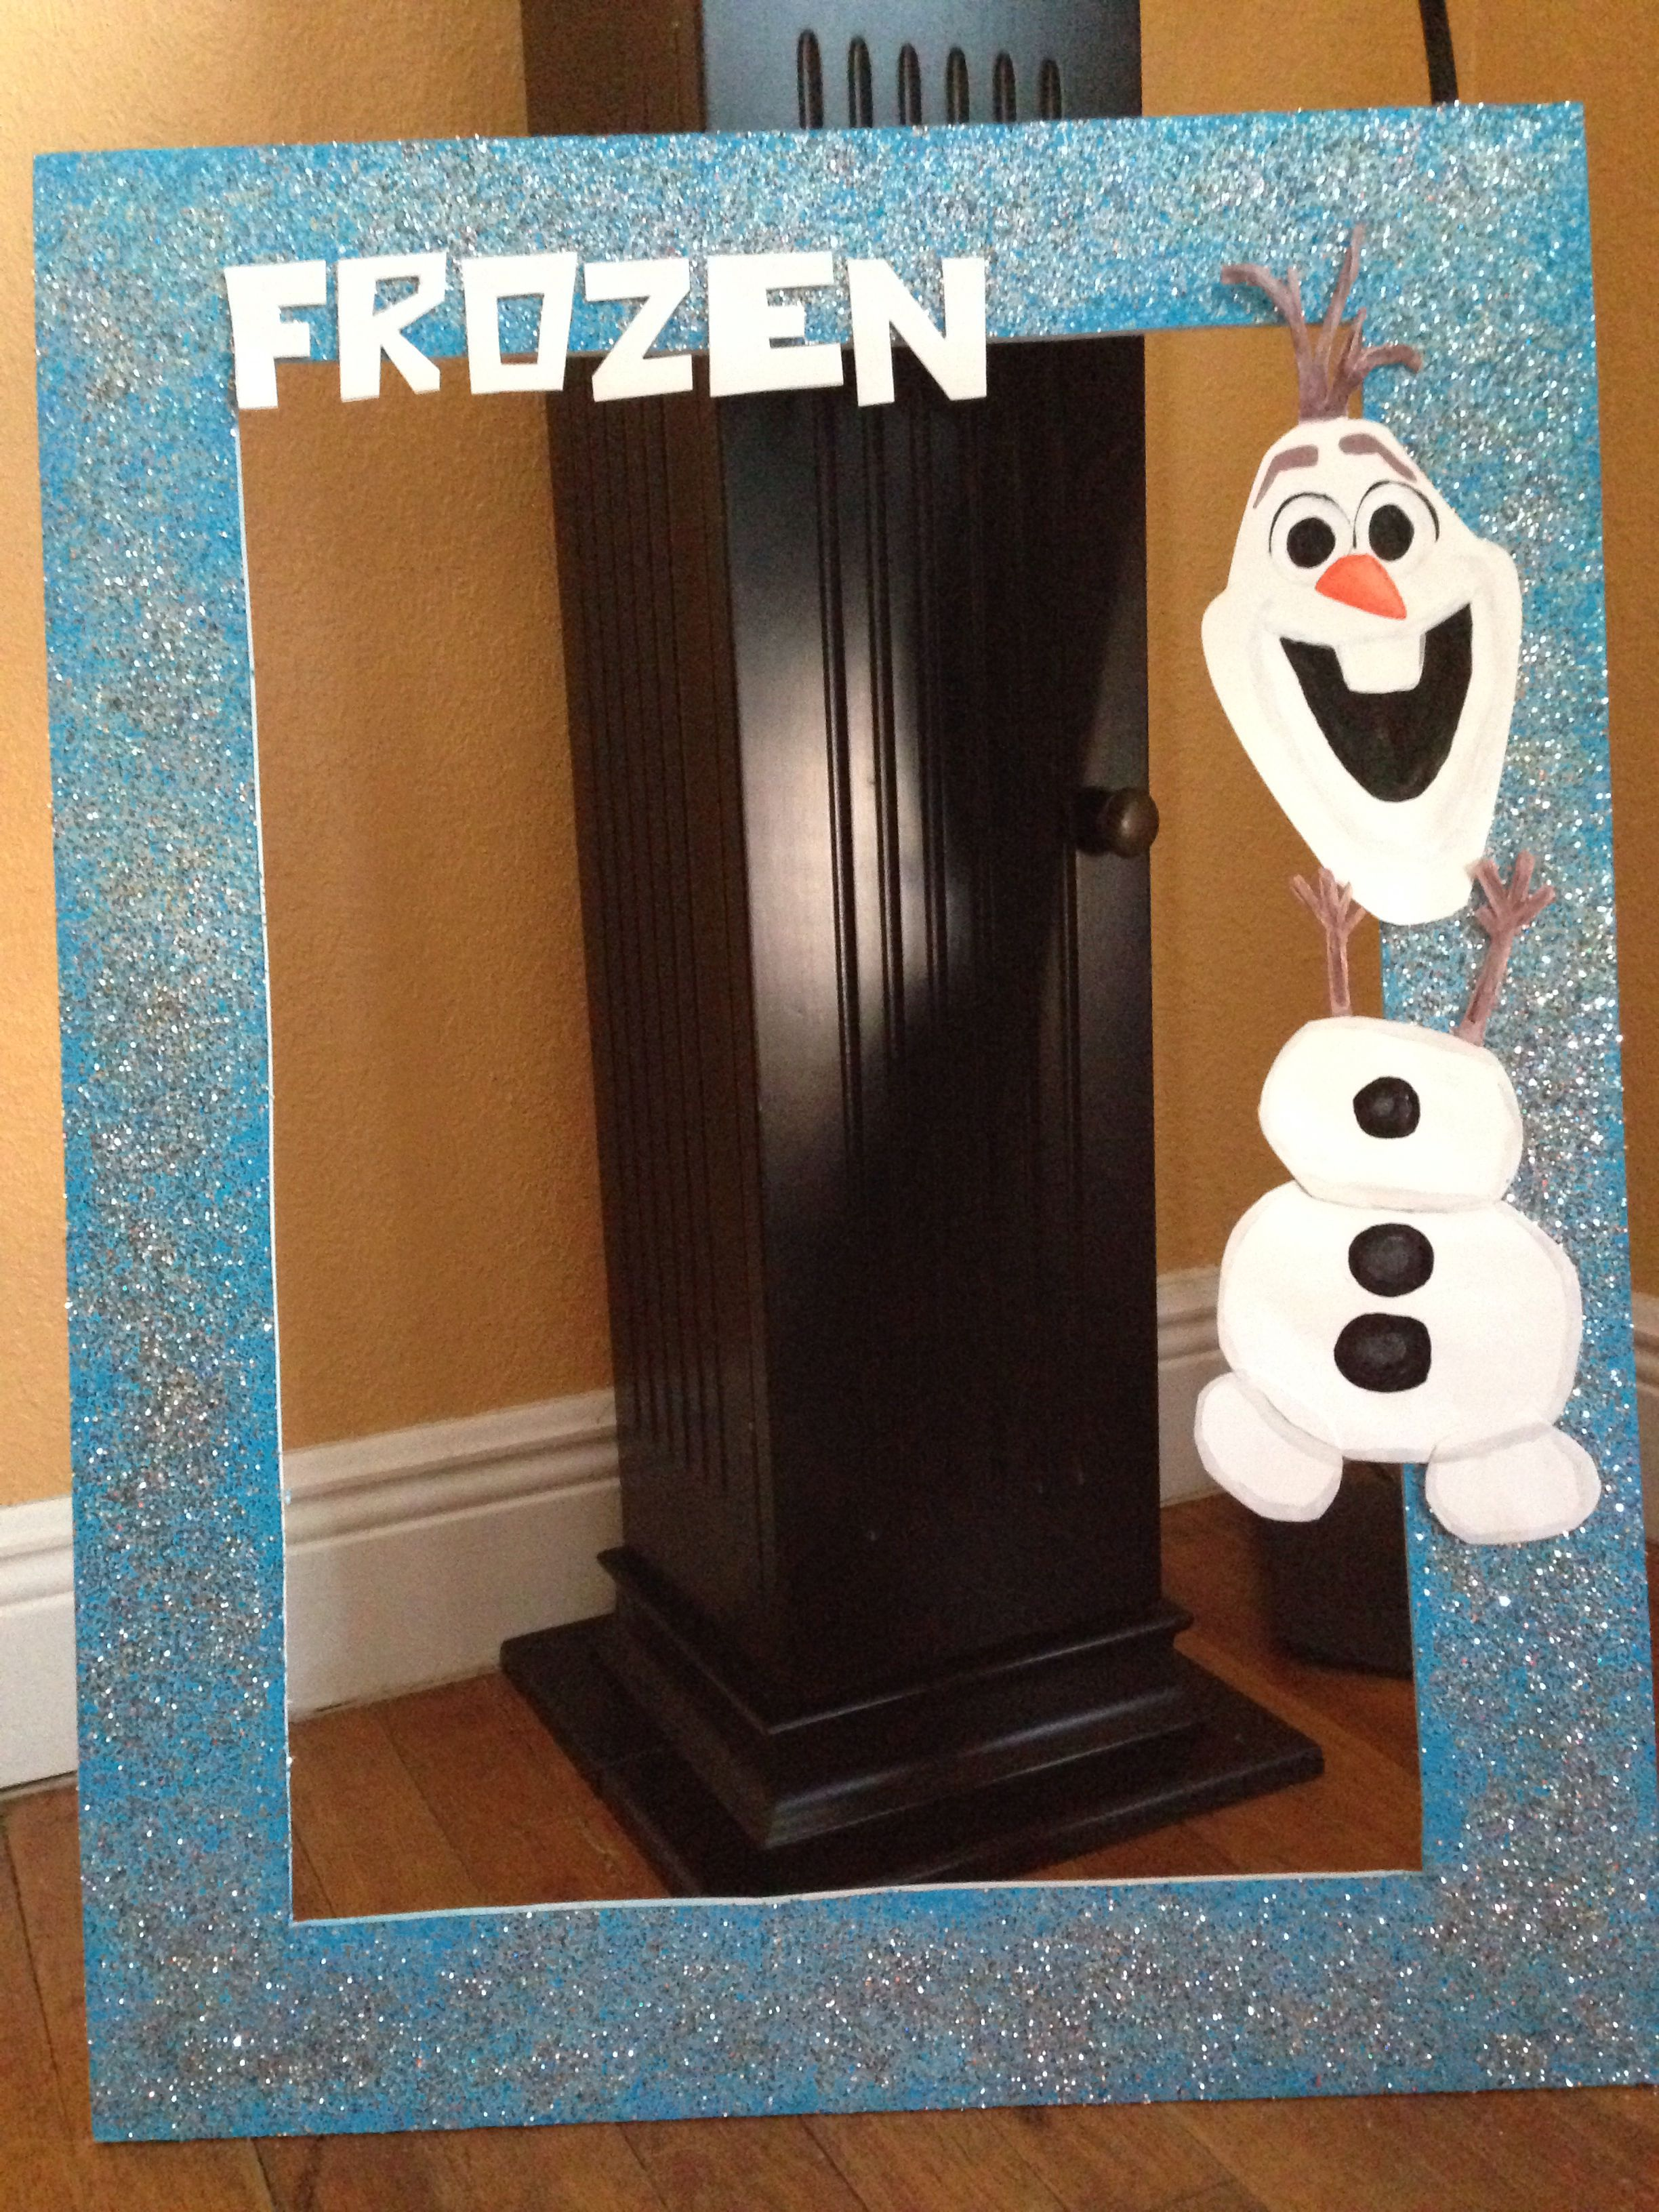 Idea for a Frozen Birthday Party photo booth prop